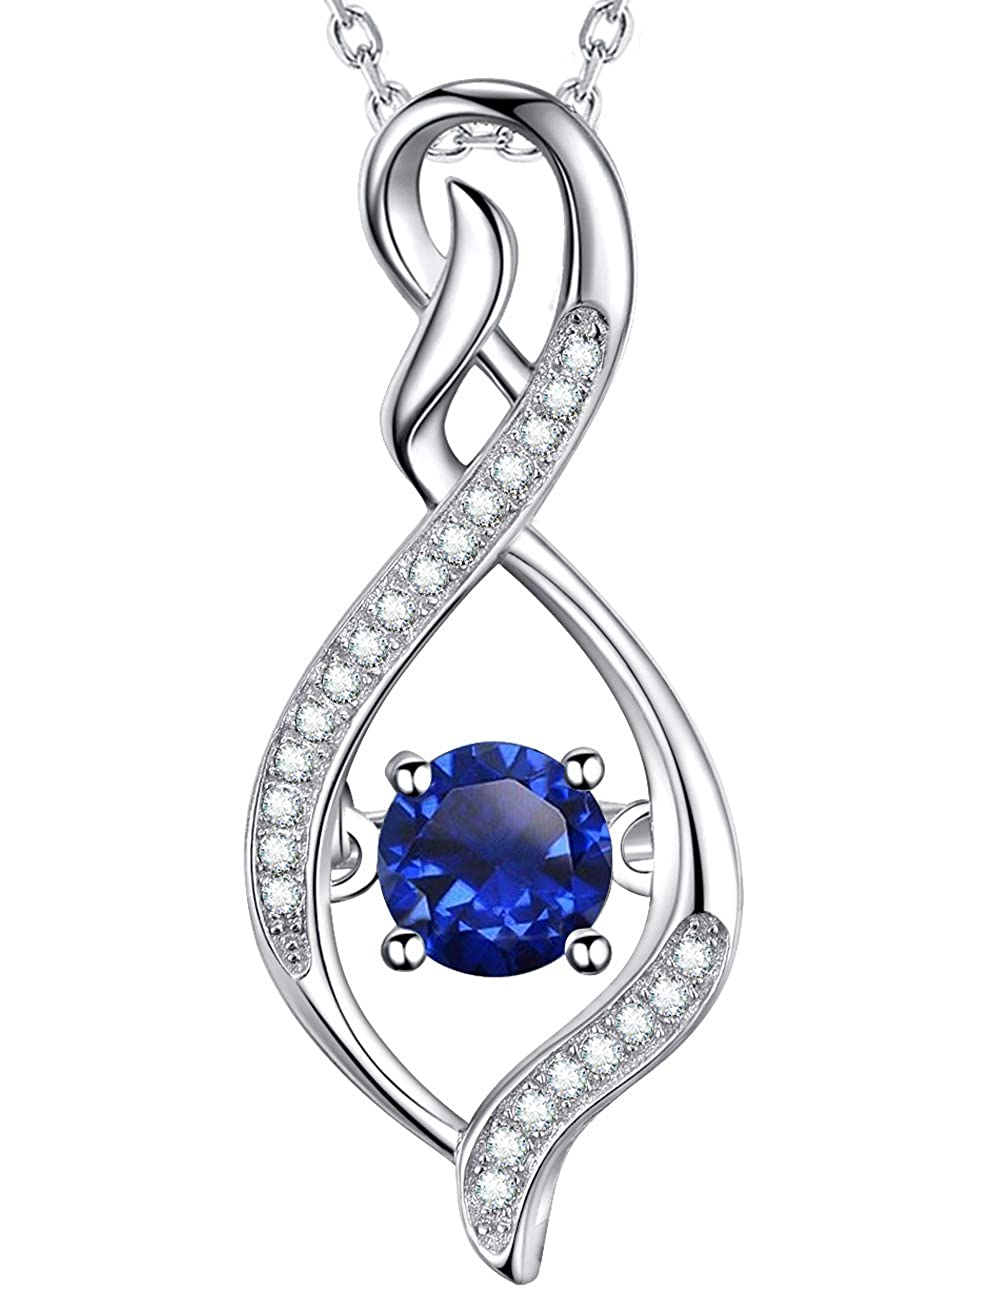 b99d814731aab Elda&Co Blue Sapphire Necklace Love Infinity or Heart Jewelry Sterling  Silver Swarovski Gifts for Women